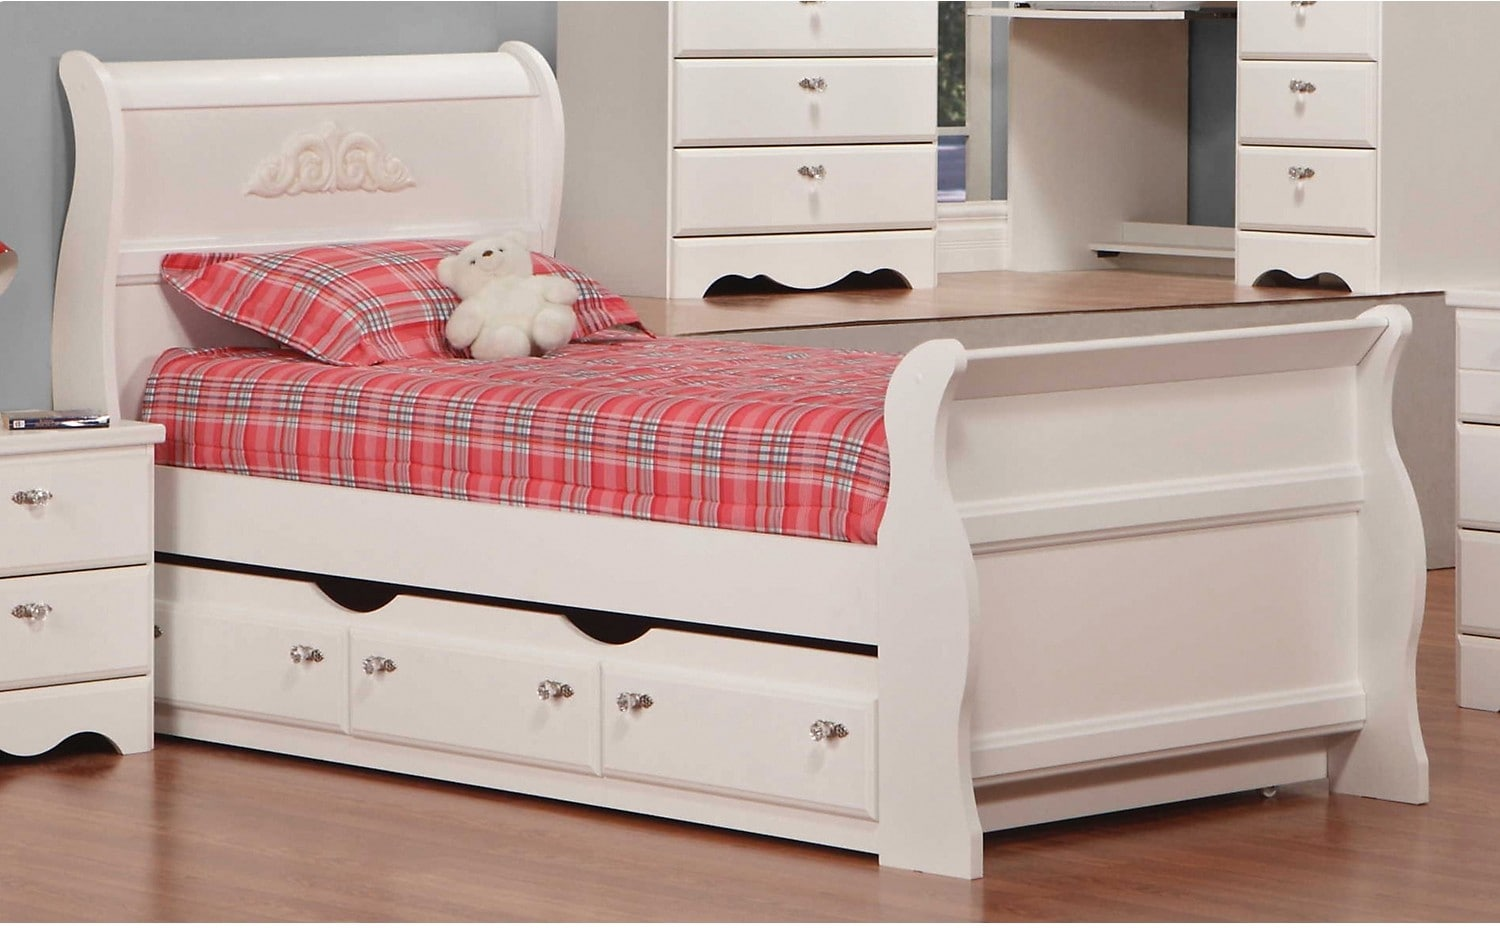 Diamond dreams twin sleigh bed w trundle the brick Twin sleigh bed